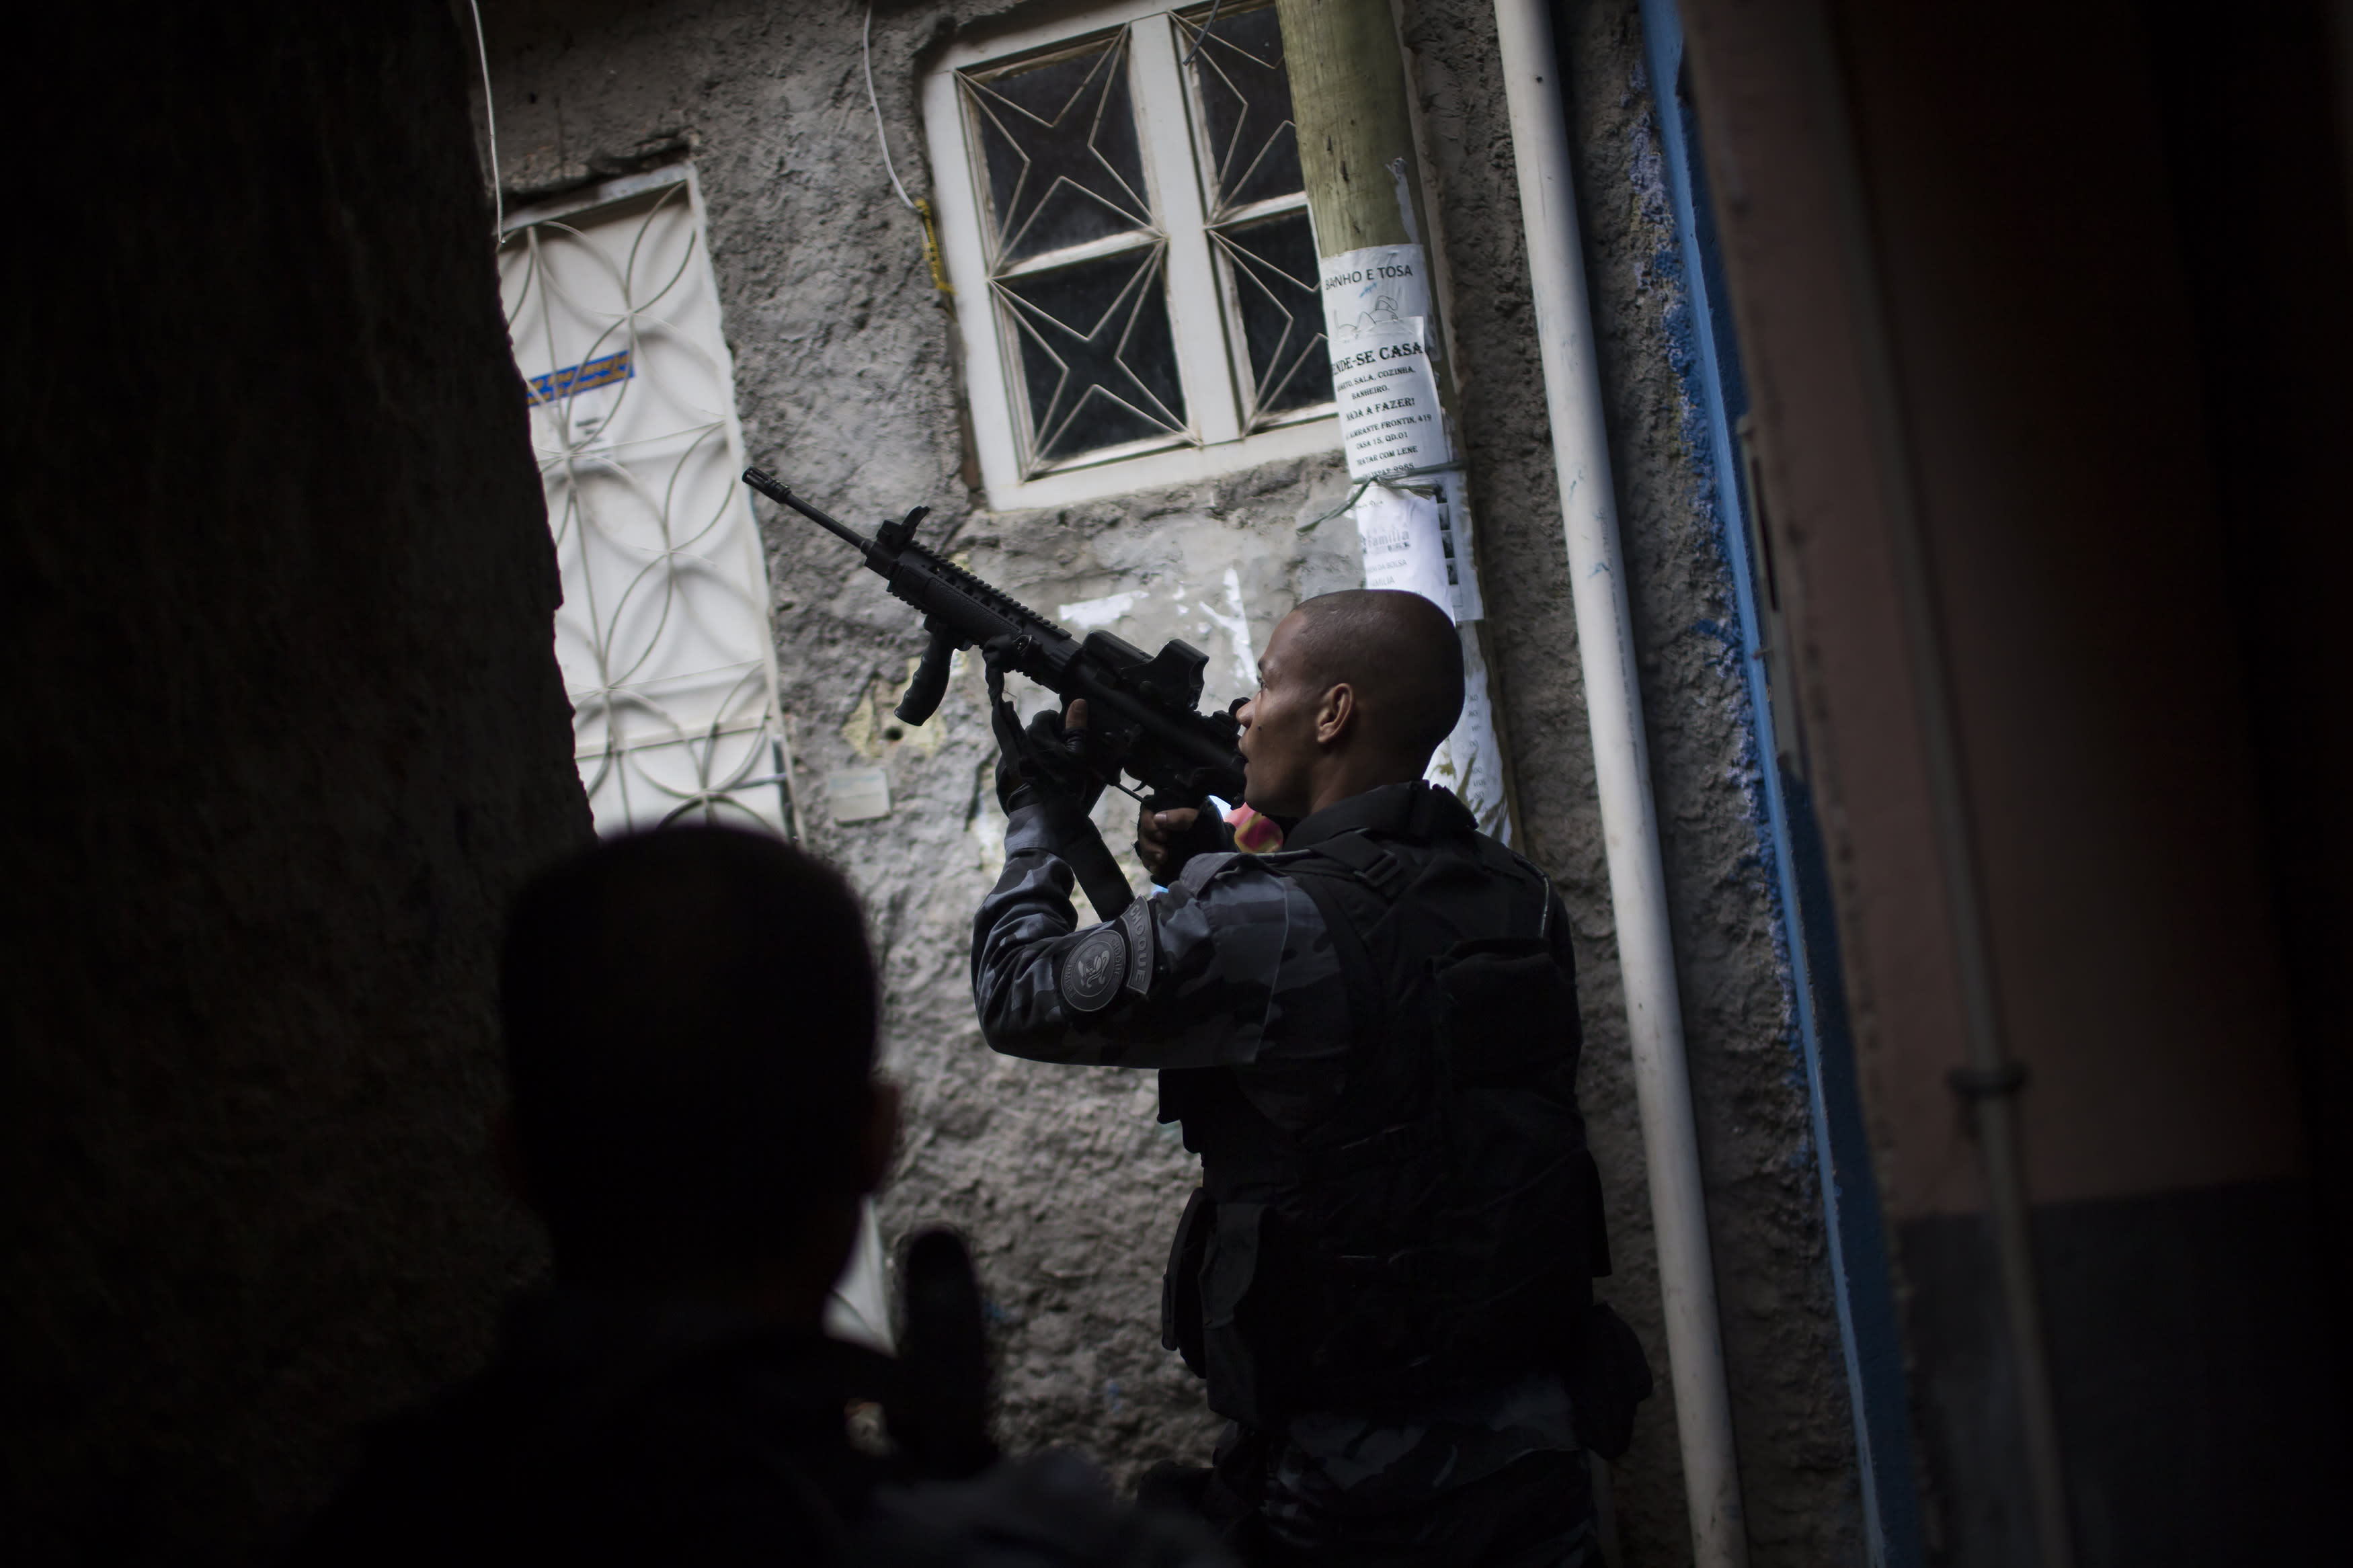 Police move into violent Rio slum, taking over from army